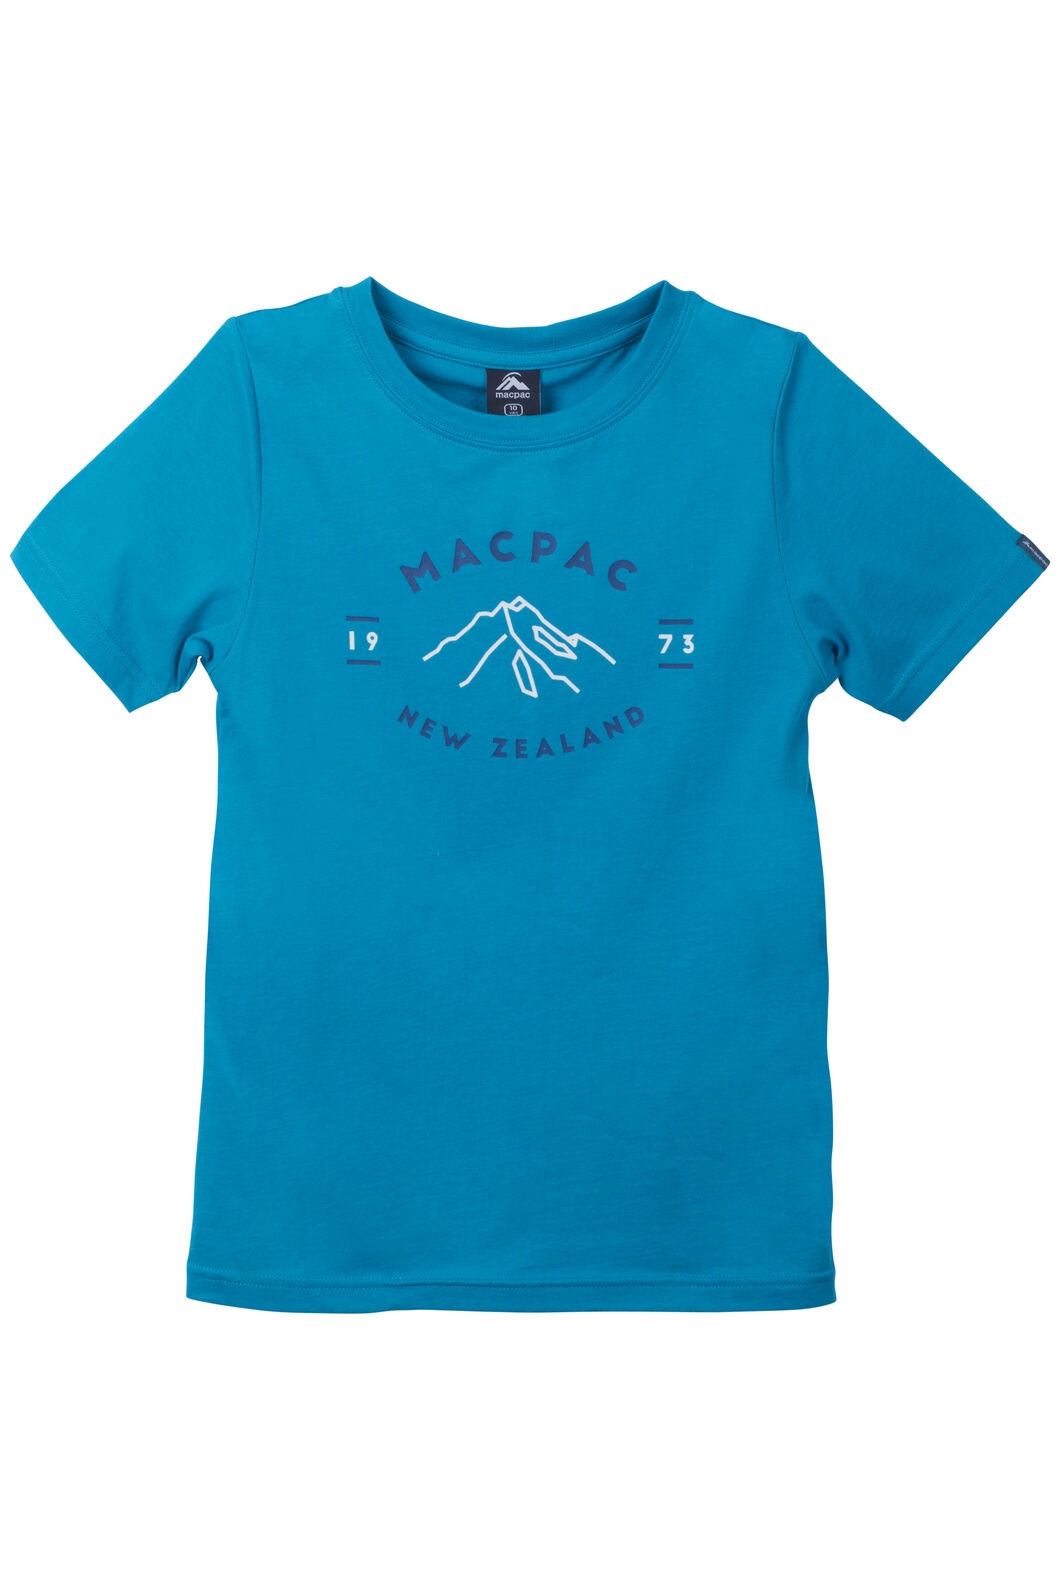 Macpac Mountain Print Organic Cotton Tee - Kids', Enamel Blue, hi-res